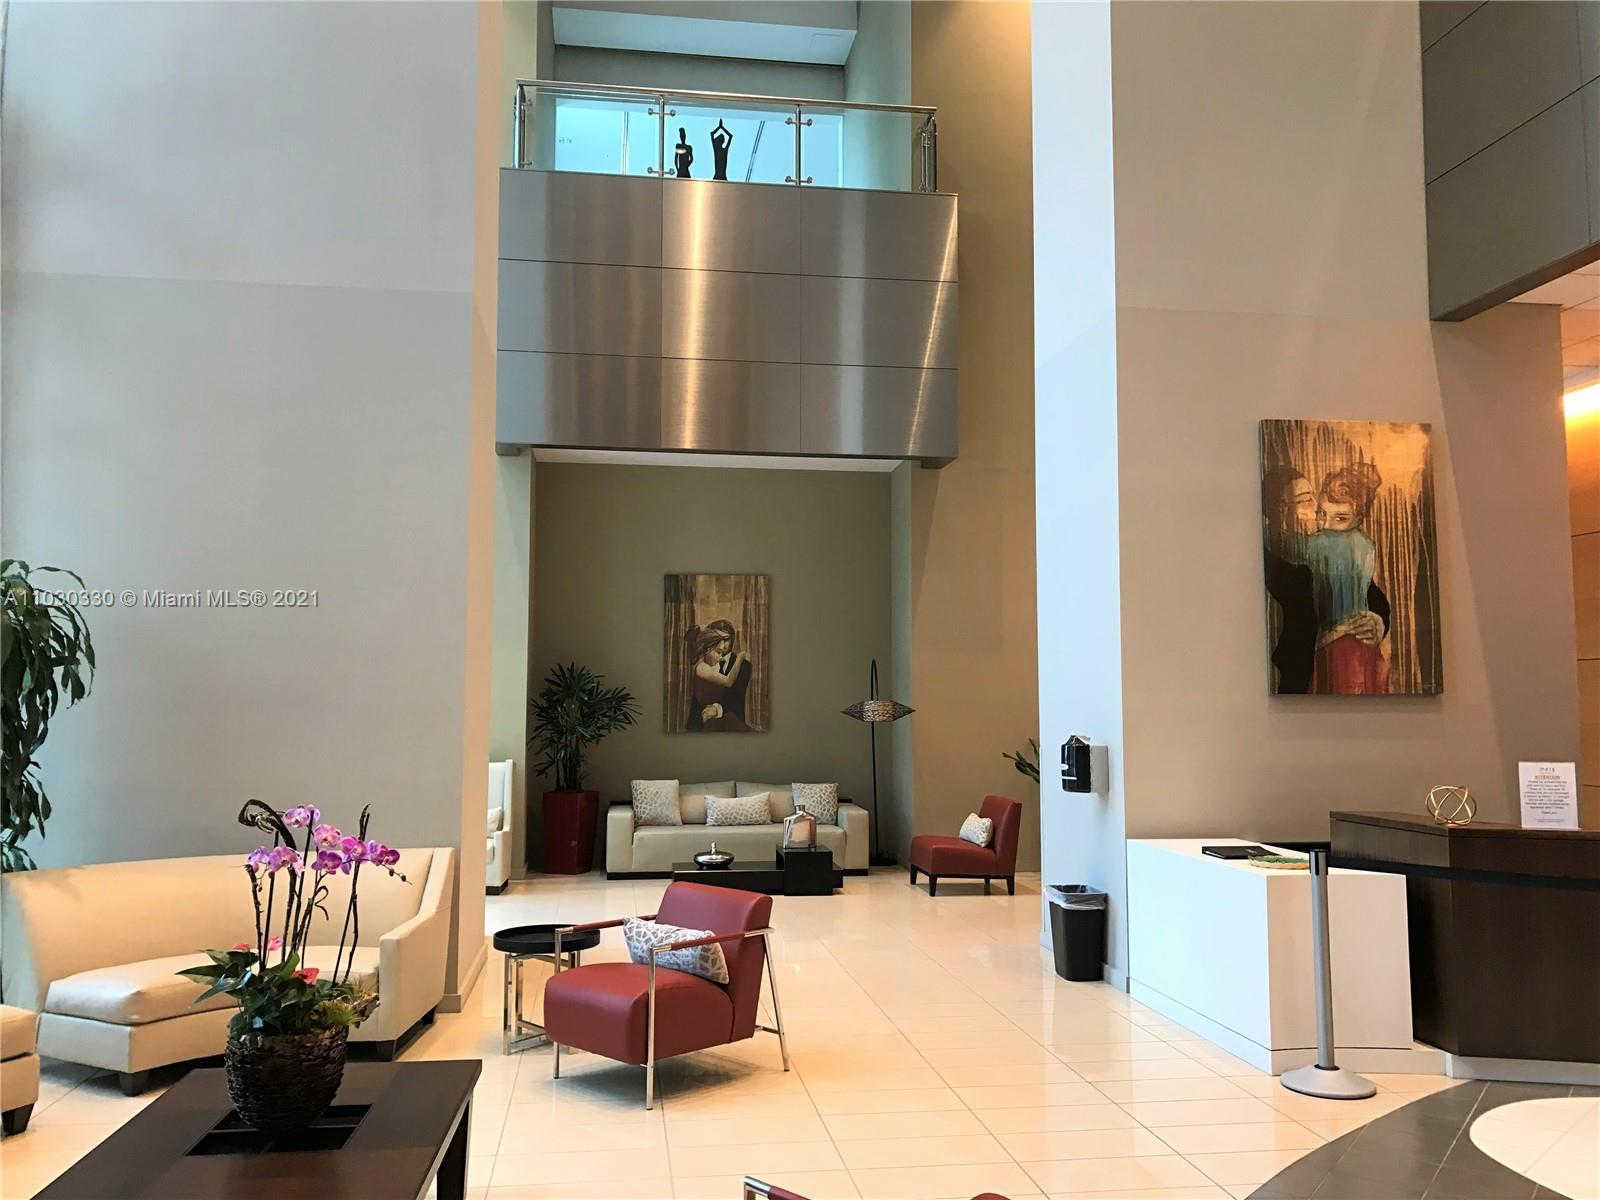 MET 1 CONDO Condo,For Sale,MET 1 CONDO Brickell,realty,broker,condos near me